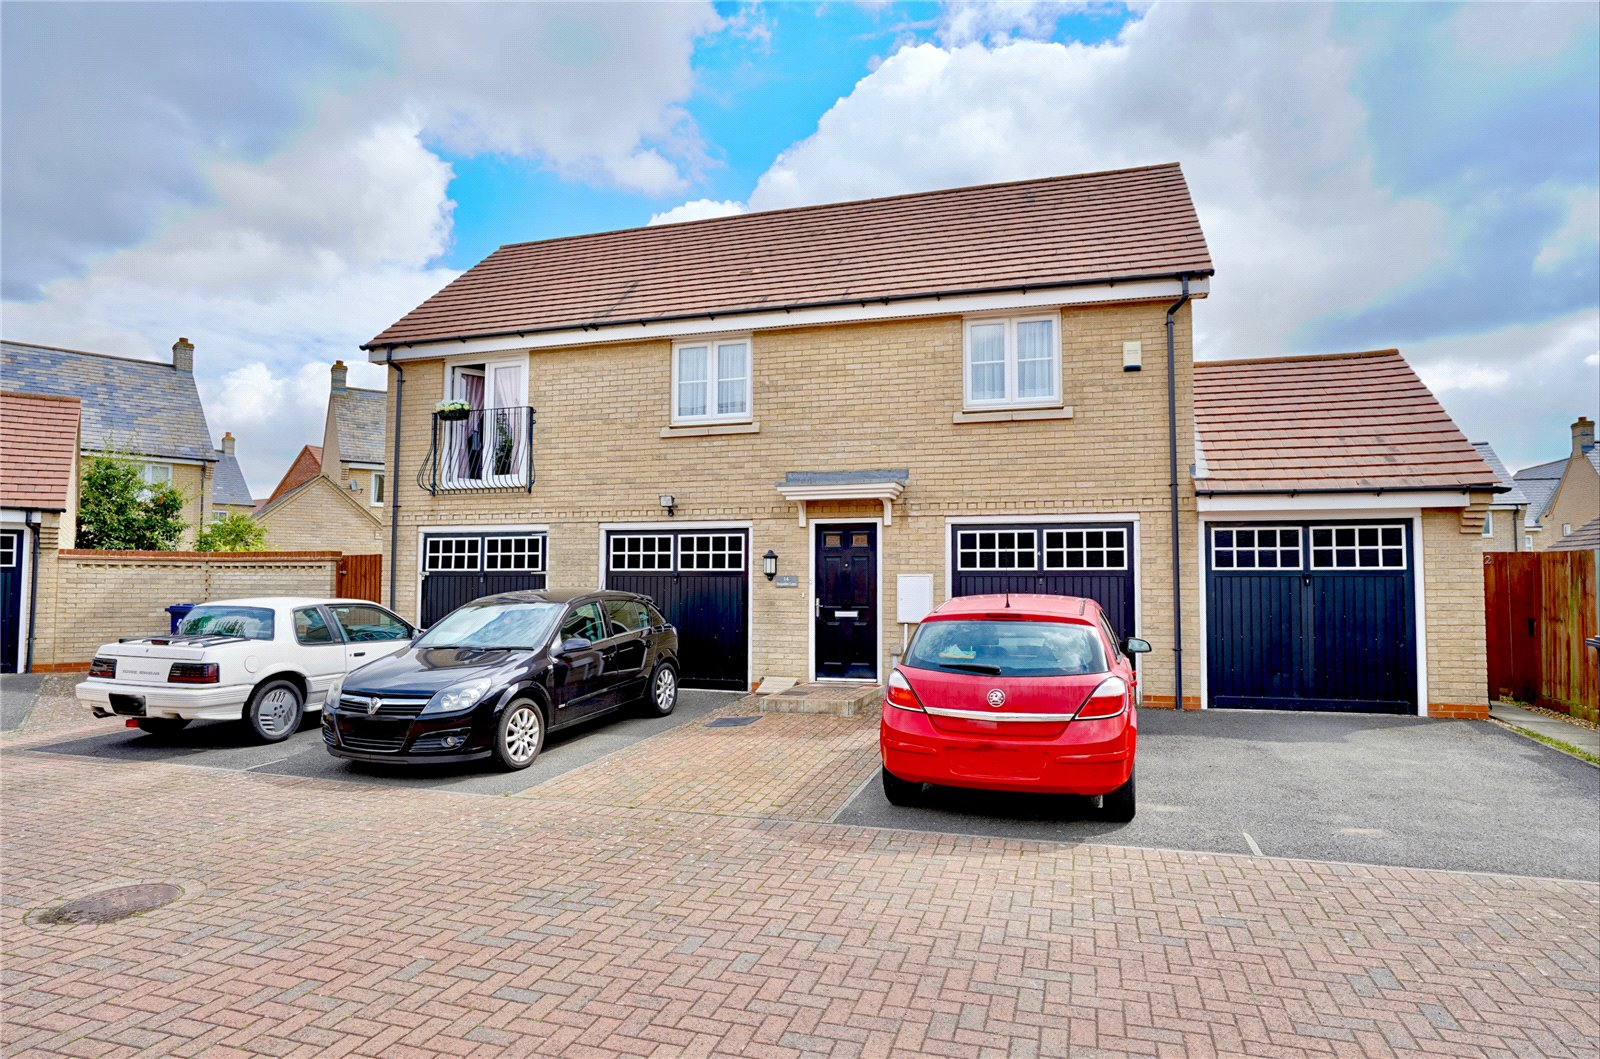 2 bed apartment for sale in Hogsden Leys, St. Neots - Property Image 1